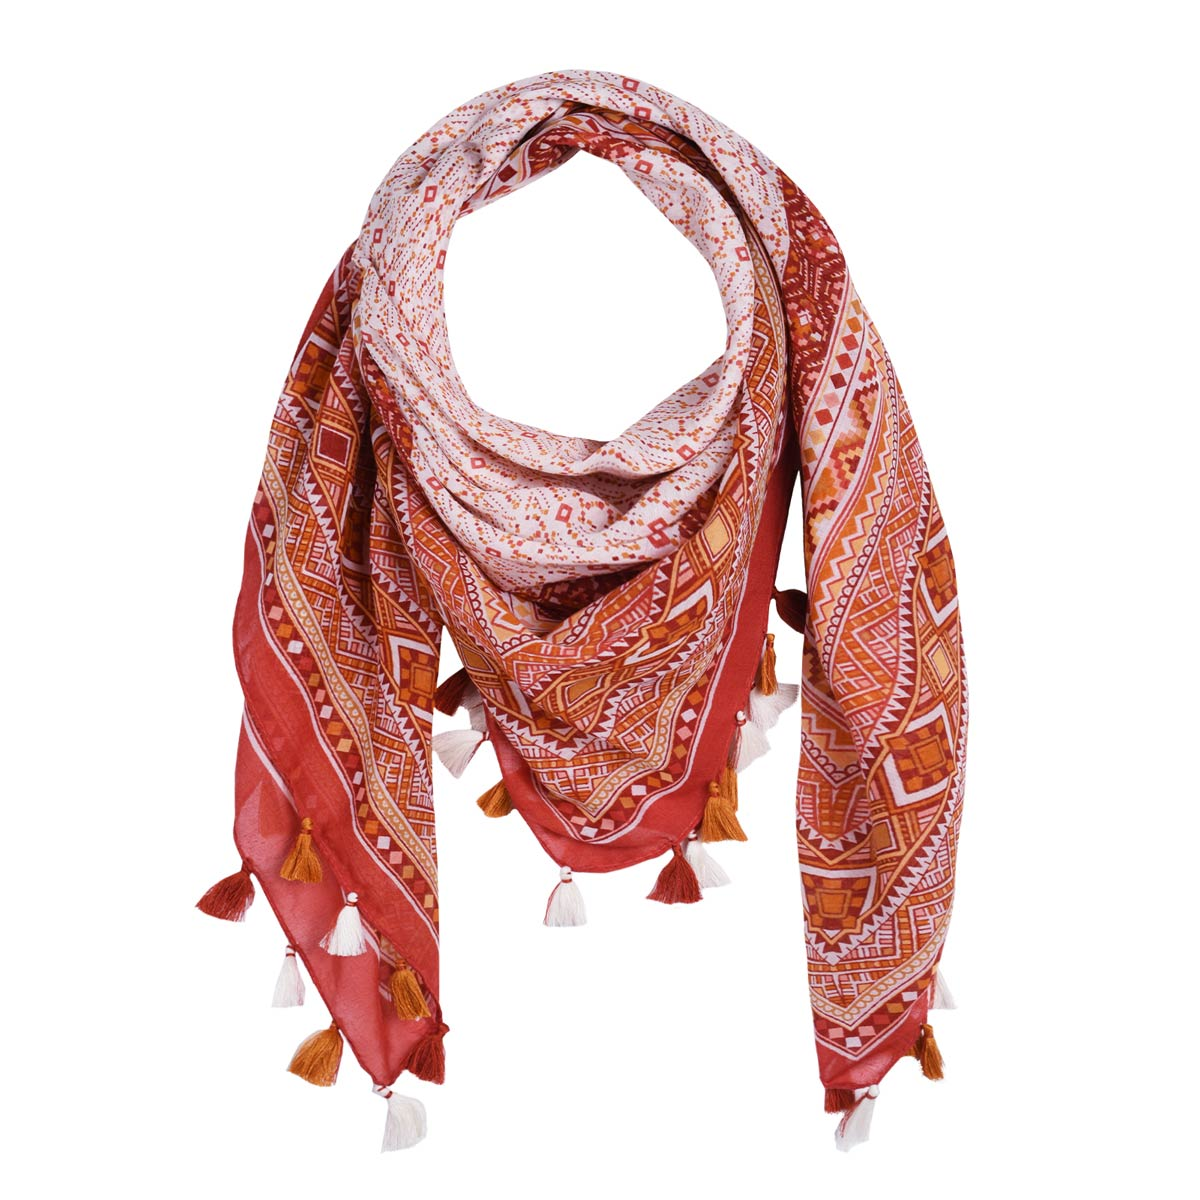 AT-06130-F12-foulard-fantaisie-rouge-marron